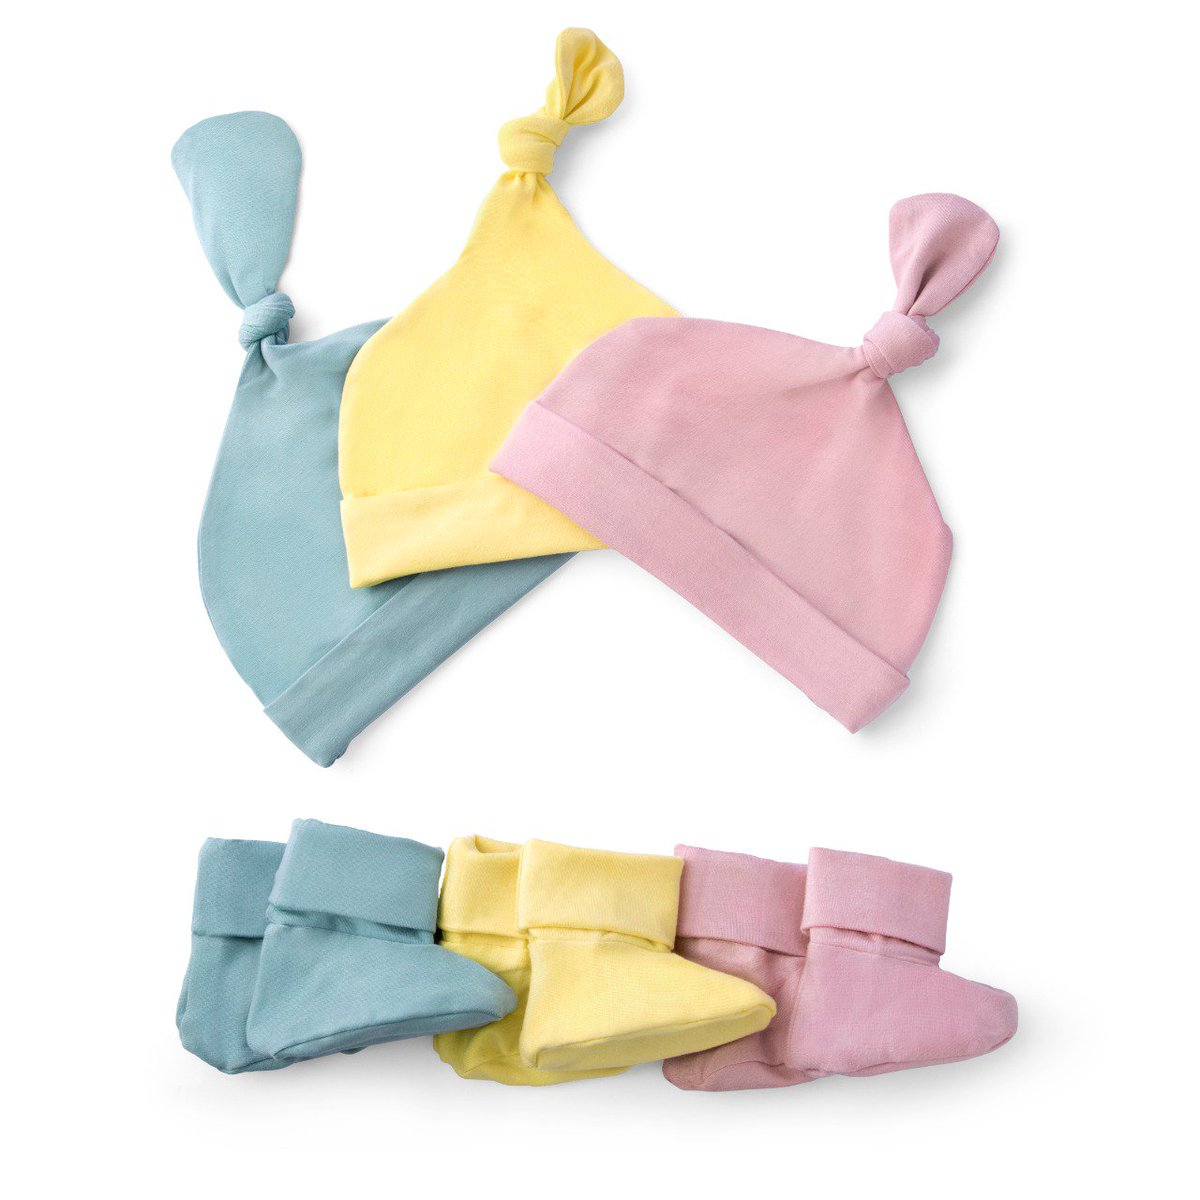 3924bff918d ... antibacterial   thermo-regulating 100%  Bamboo Fabric! Choose from  stylish swaddle wraps